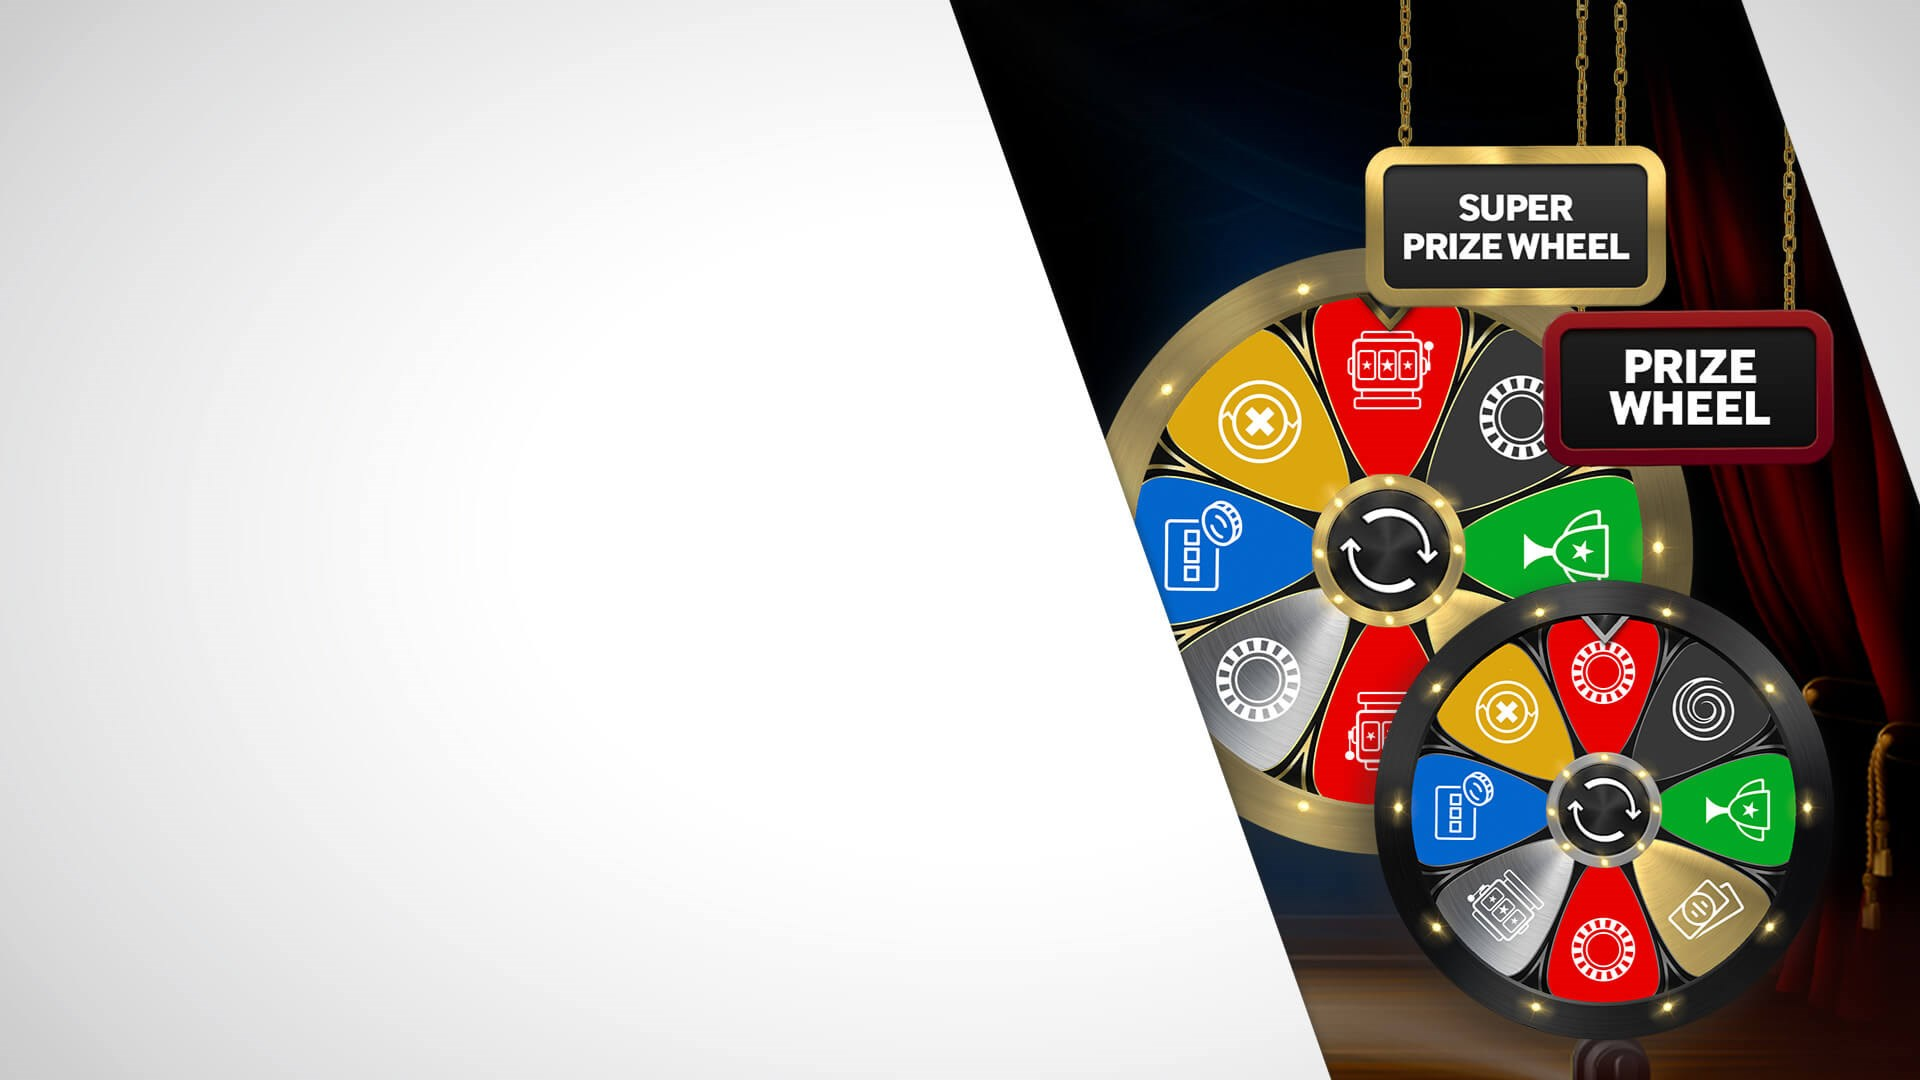 Free Spin on our Prize Wheel each day**